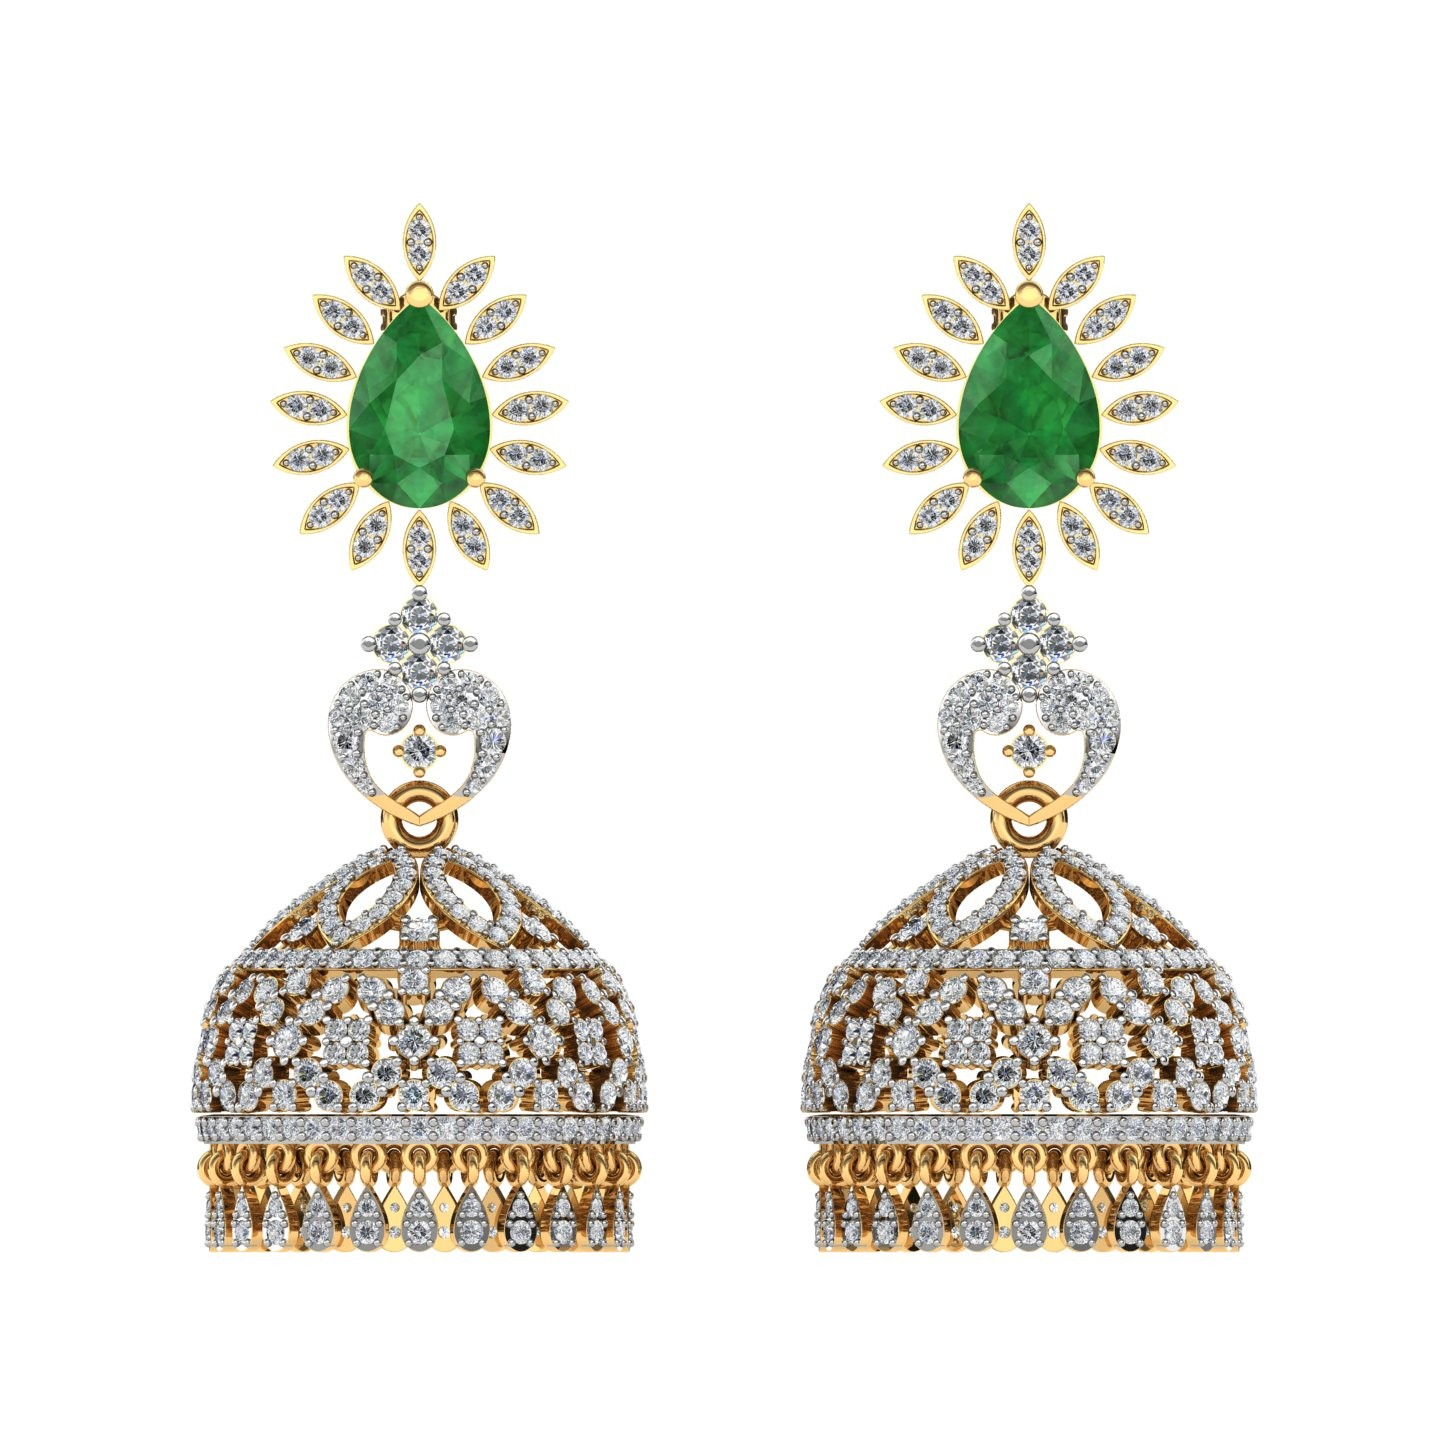 The Alyne jhumka Earrings